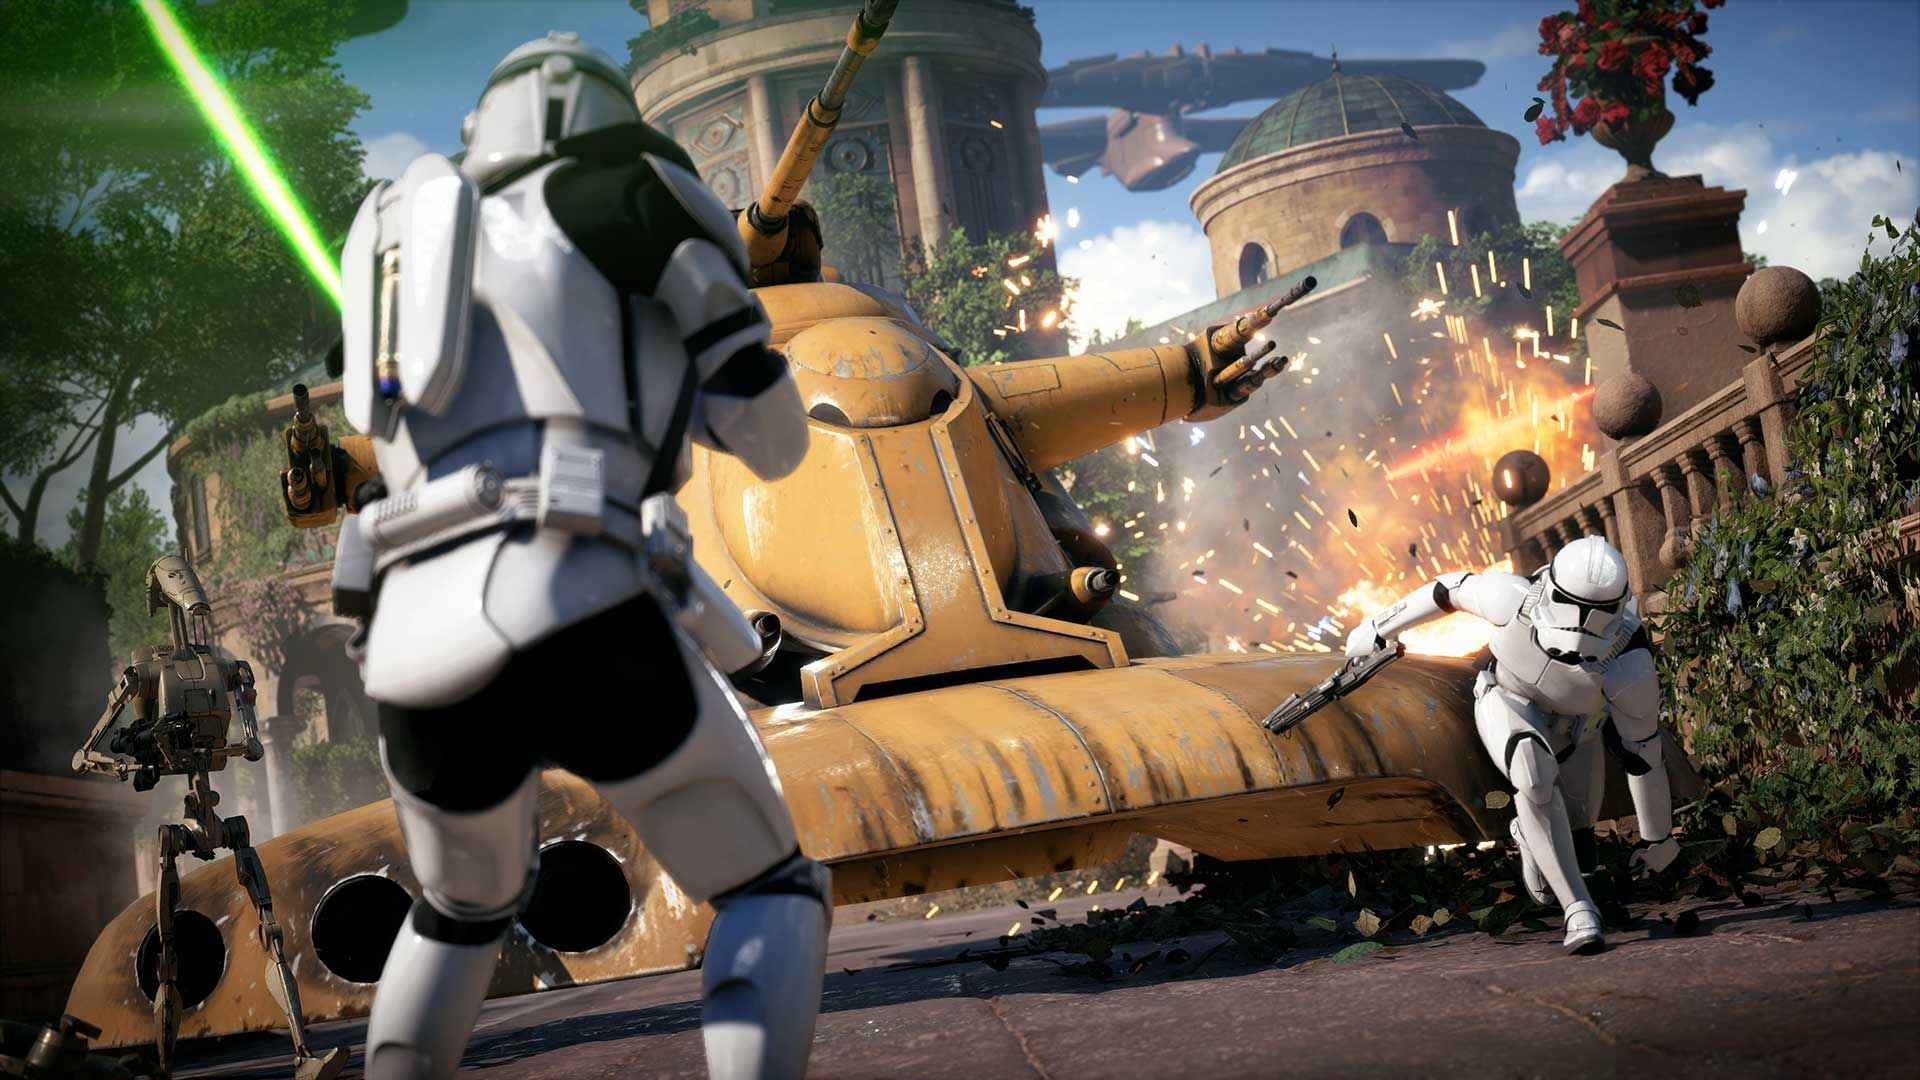 The Star Wars Battlefront 2 beta is now open to all